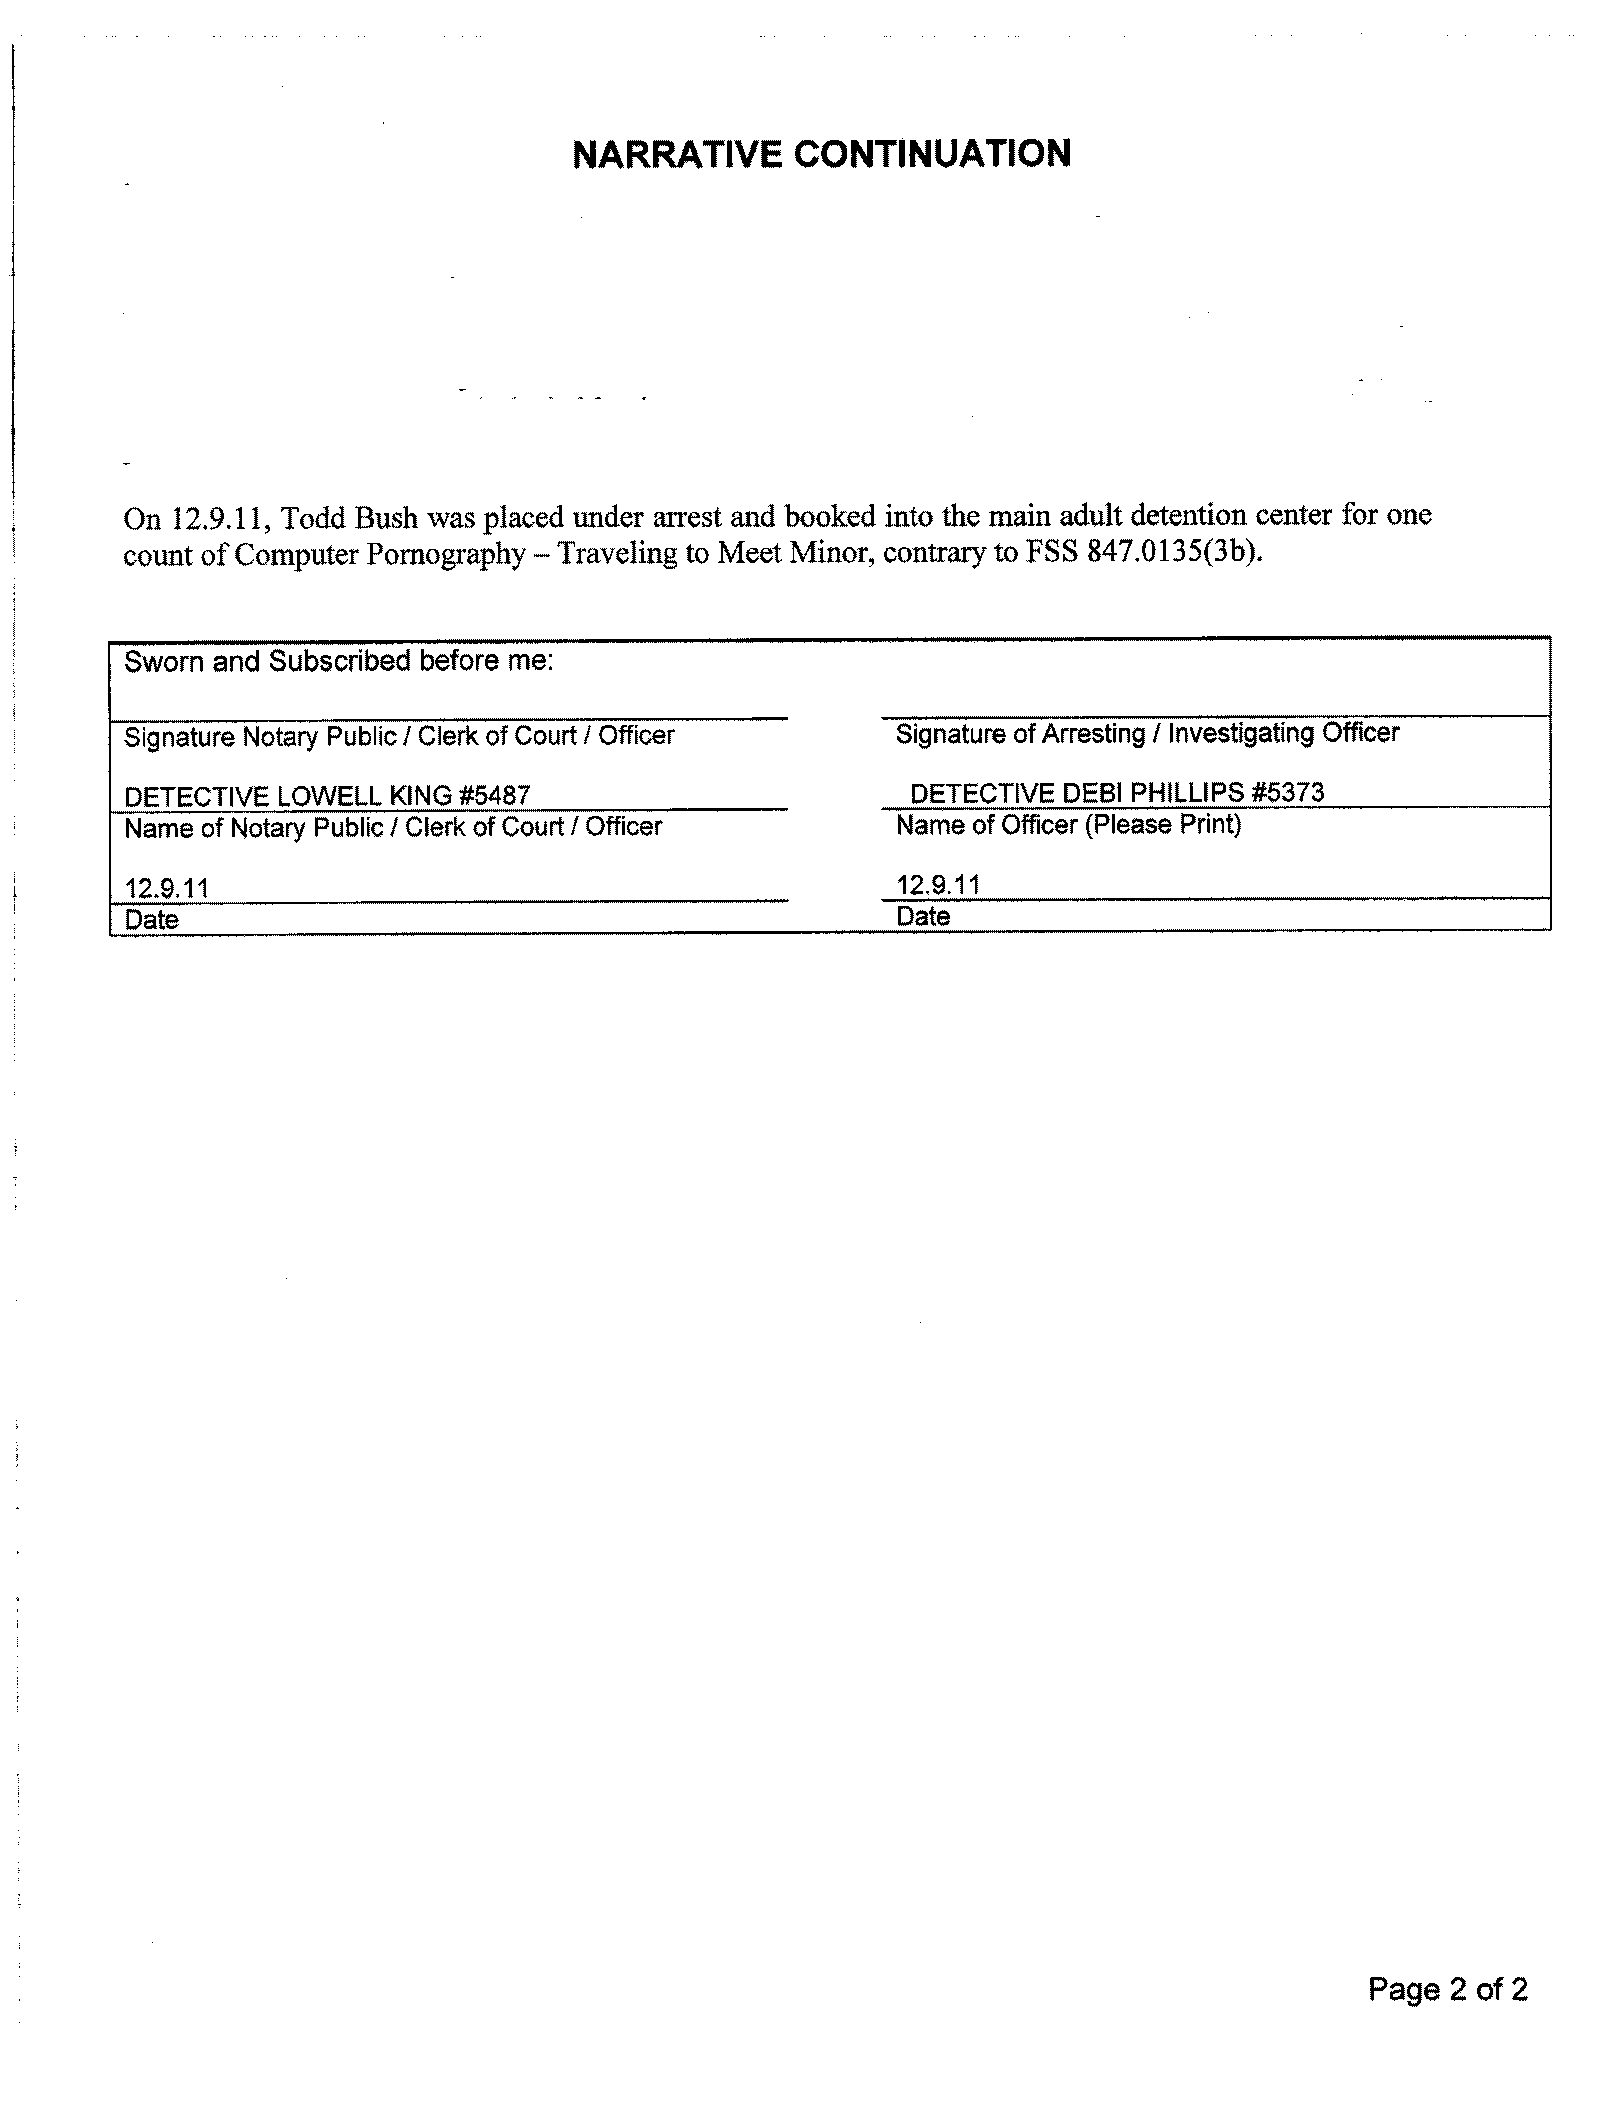 Copy of bush todd wilson probable cause affidavit2.png